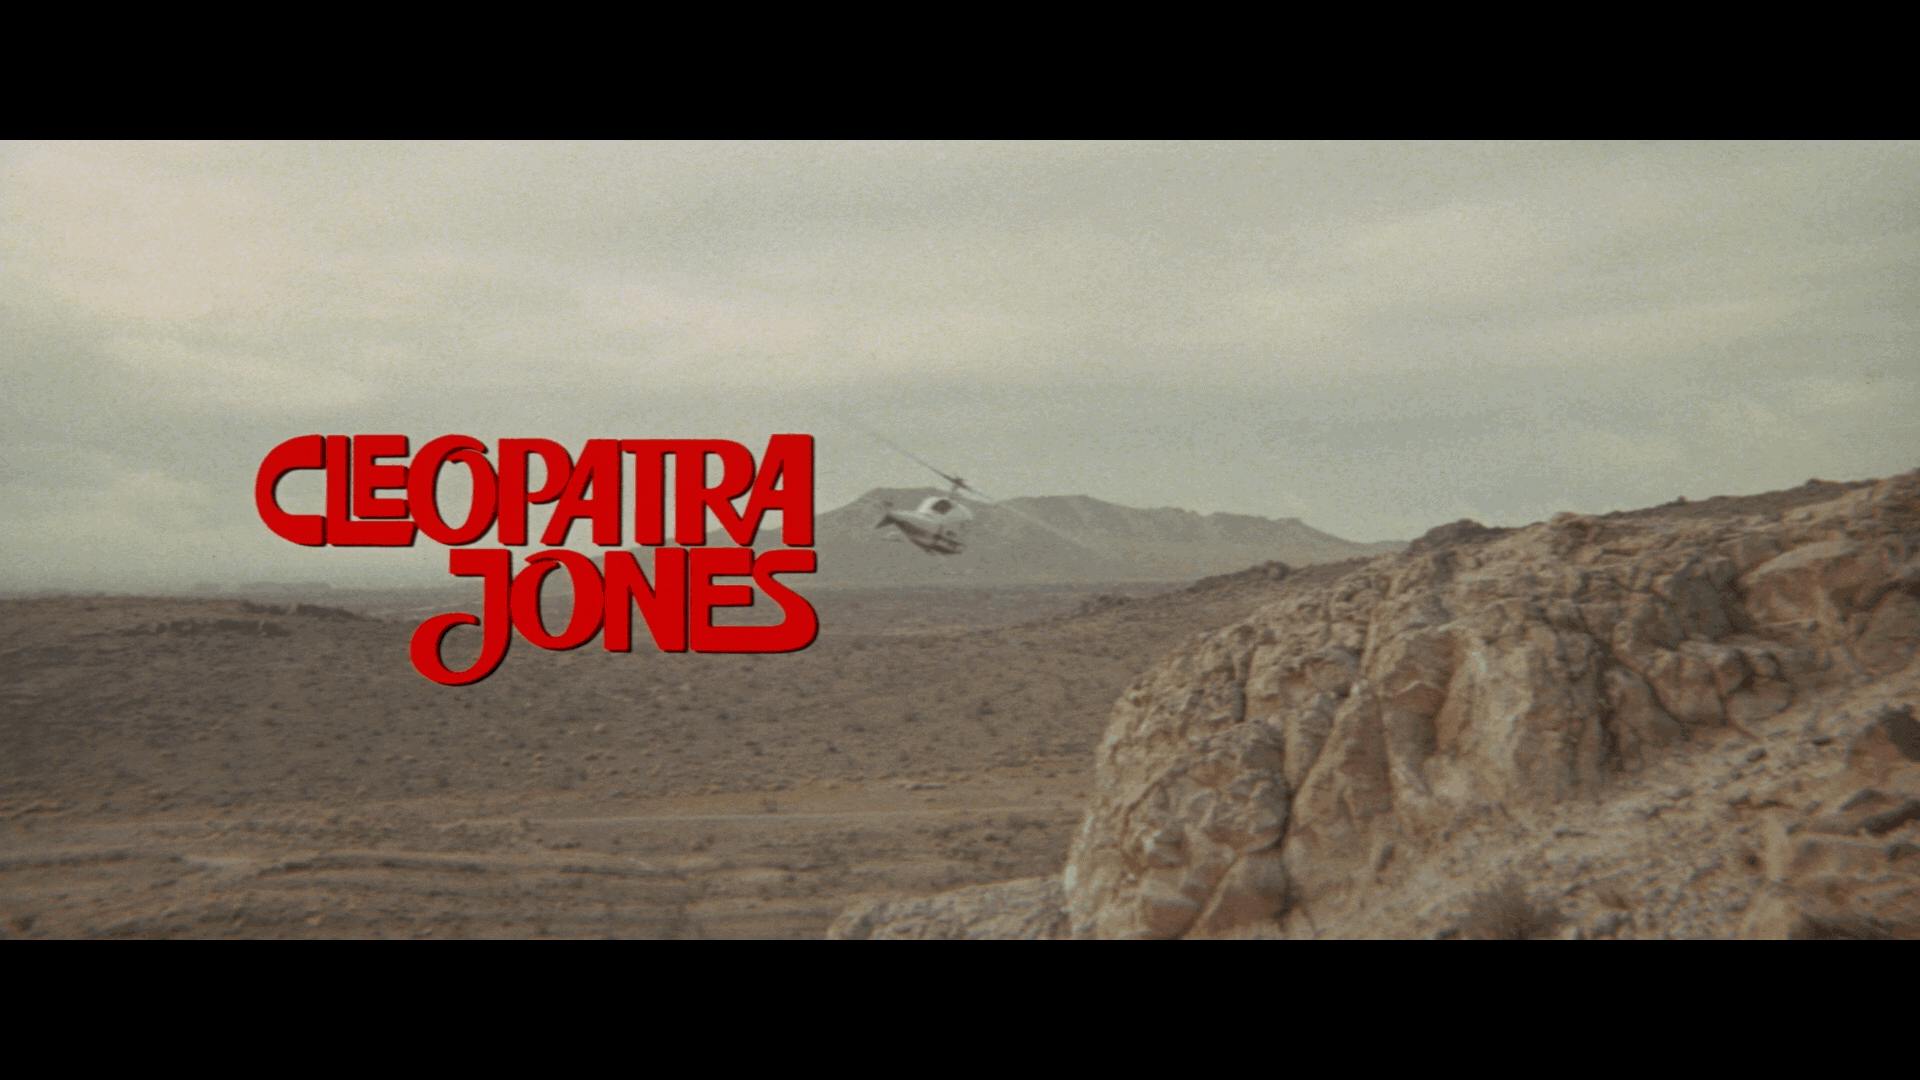 cleopatra jones title